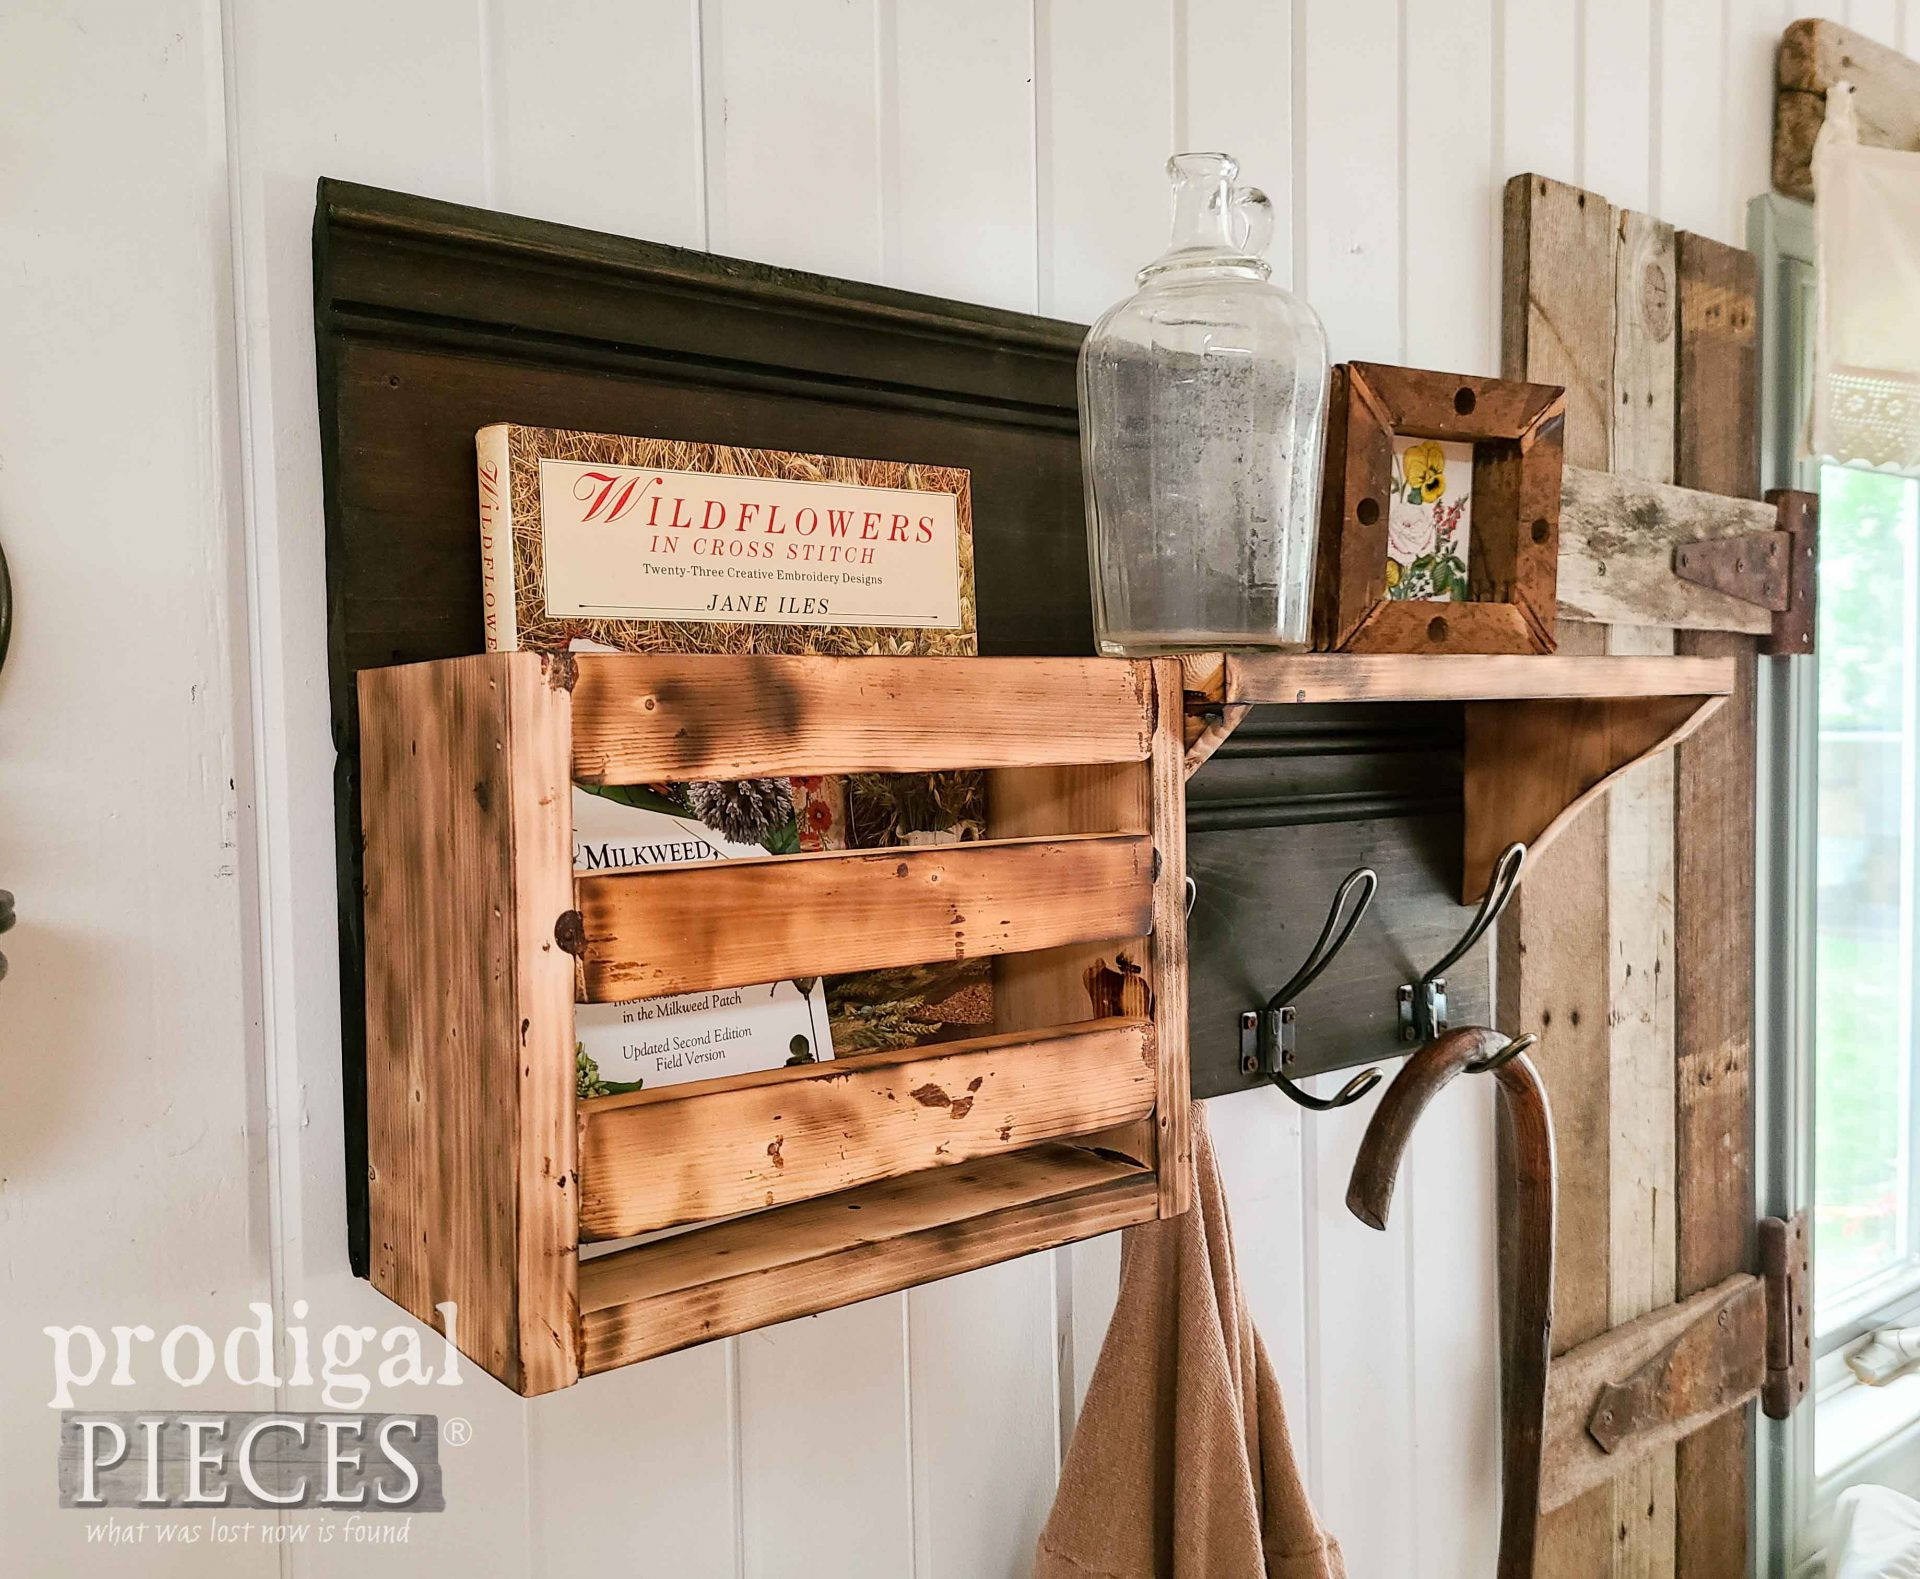 Rustic Scorched Coat Rack with Tutorial by Larissa of Prodigal Pieces | prodigalpieces.com #prodigalpieces #rustic #farmhouse #home #diy